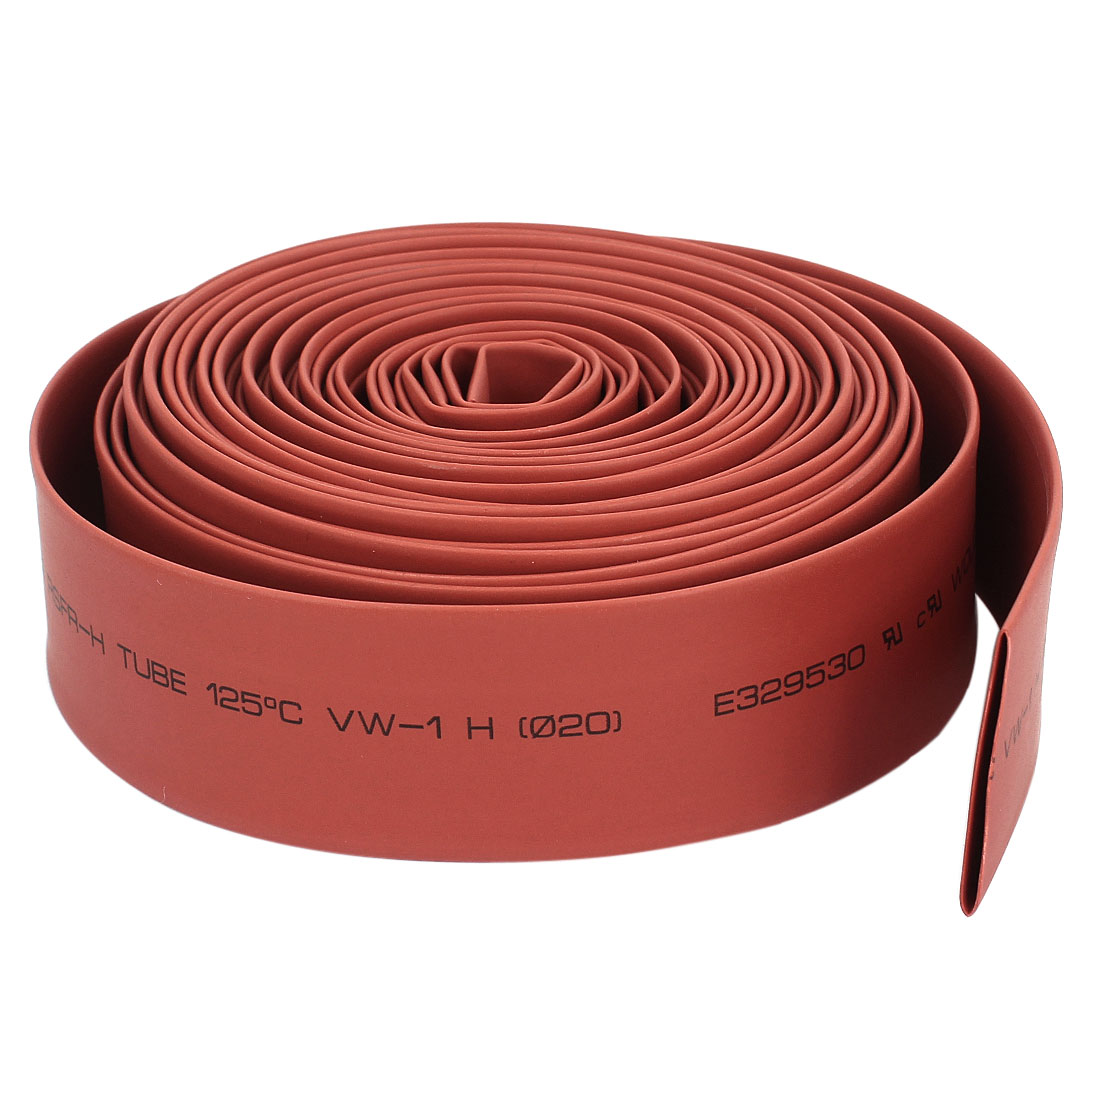 20mm Polyolefin 2:1 Heat Shrink Tubing Cable Sleeve 6.5M 21 Ft Red